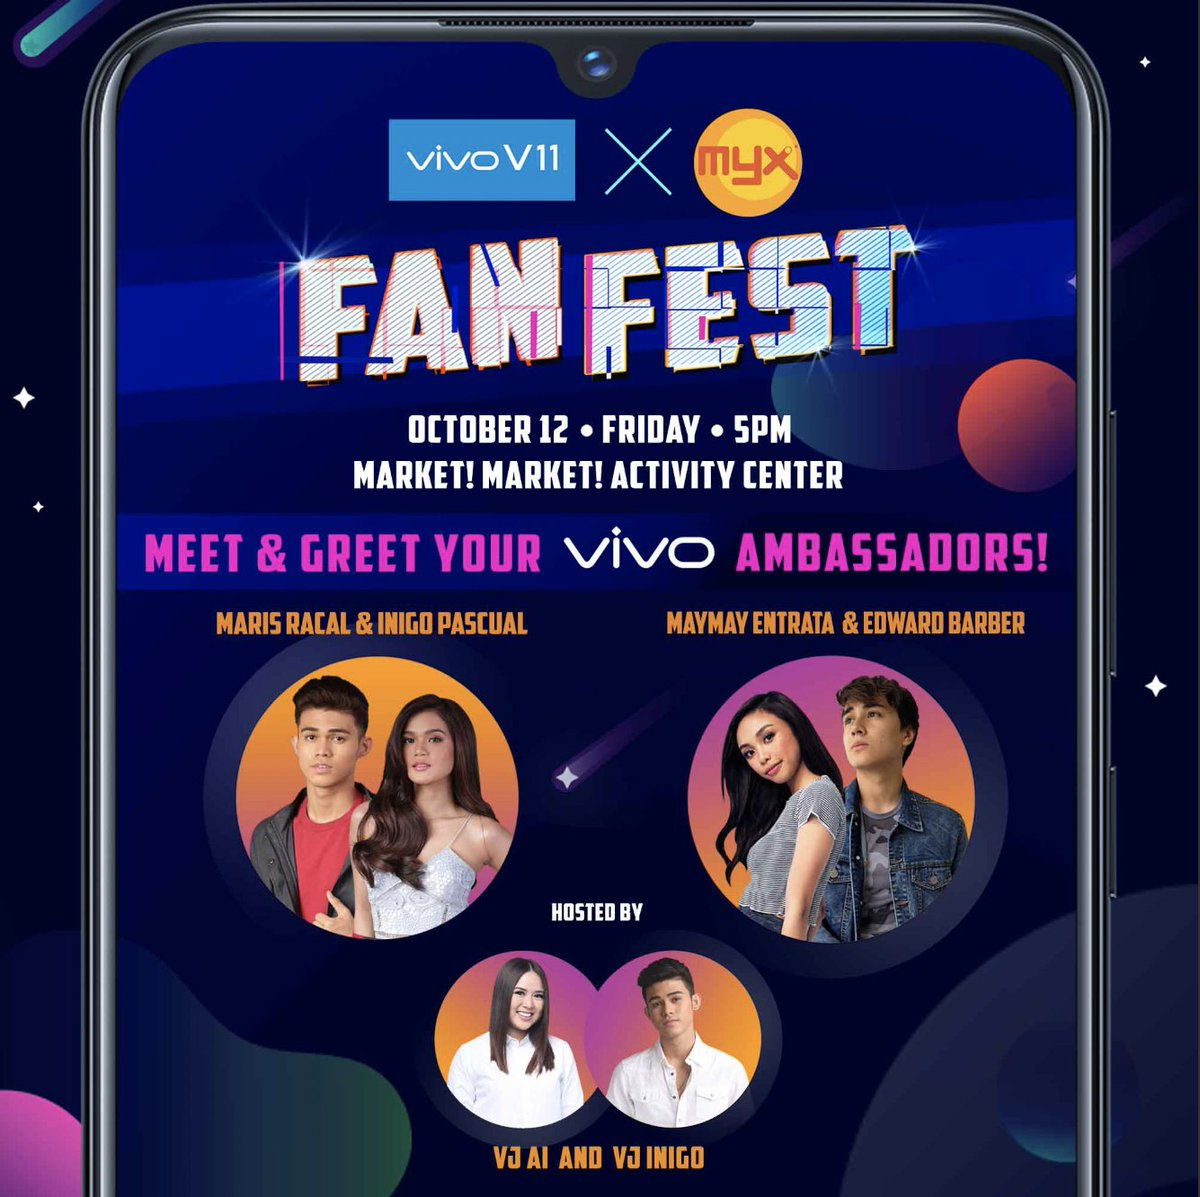 #MarNigo and #MayWard fans, are you ready for this? Vivo and MYX are giving you the chance to MEET & GREET your Vivo ambassadors – Maris Racal, Inigo Pascual, Maymay Entrata and Edward Barber at the VIVO x MYX Fan Fest on October 12, Friday at the Market Market Activity Center!